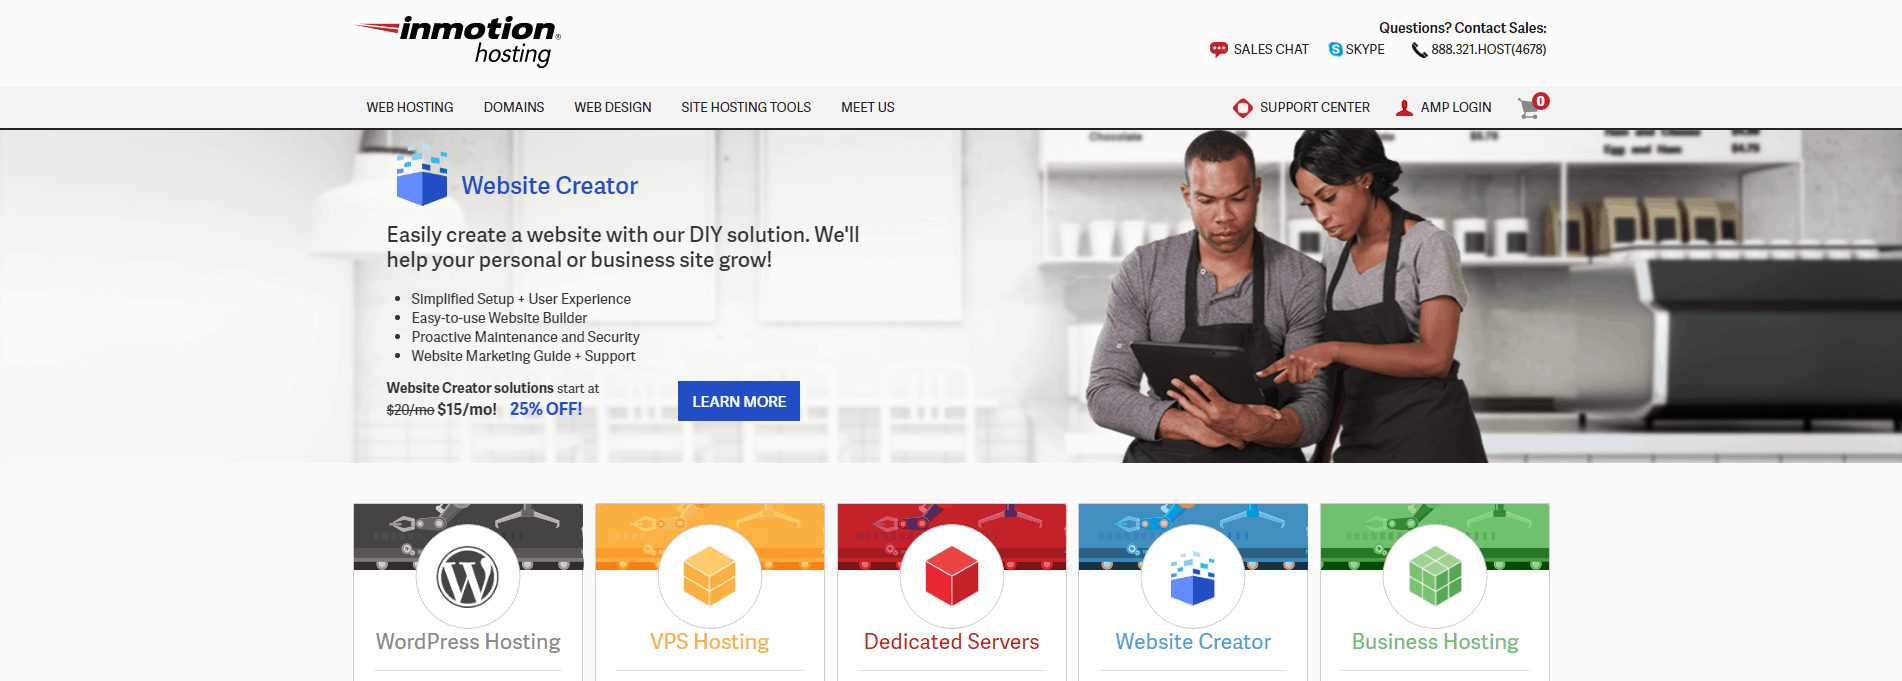 6 Best GoDaddy Alternatives for Hosting, Domains, and Resellers 2019